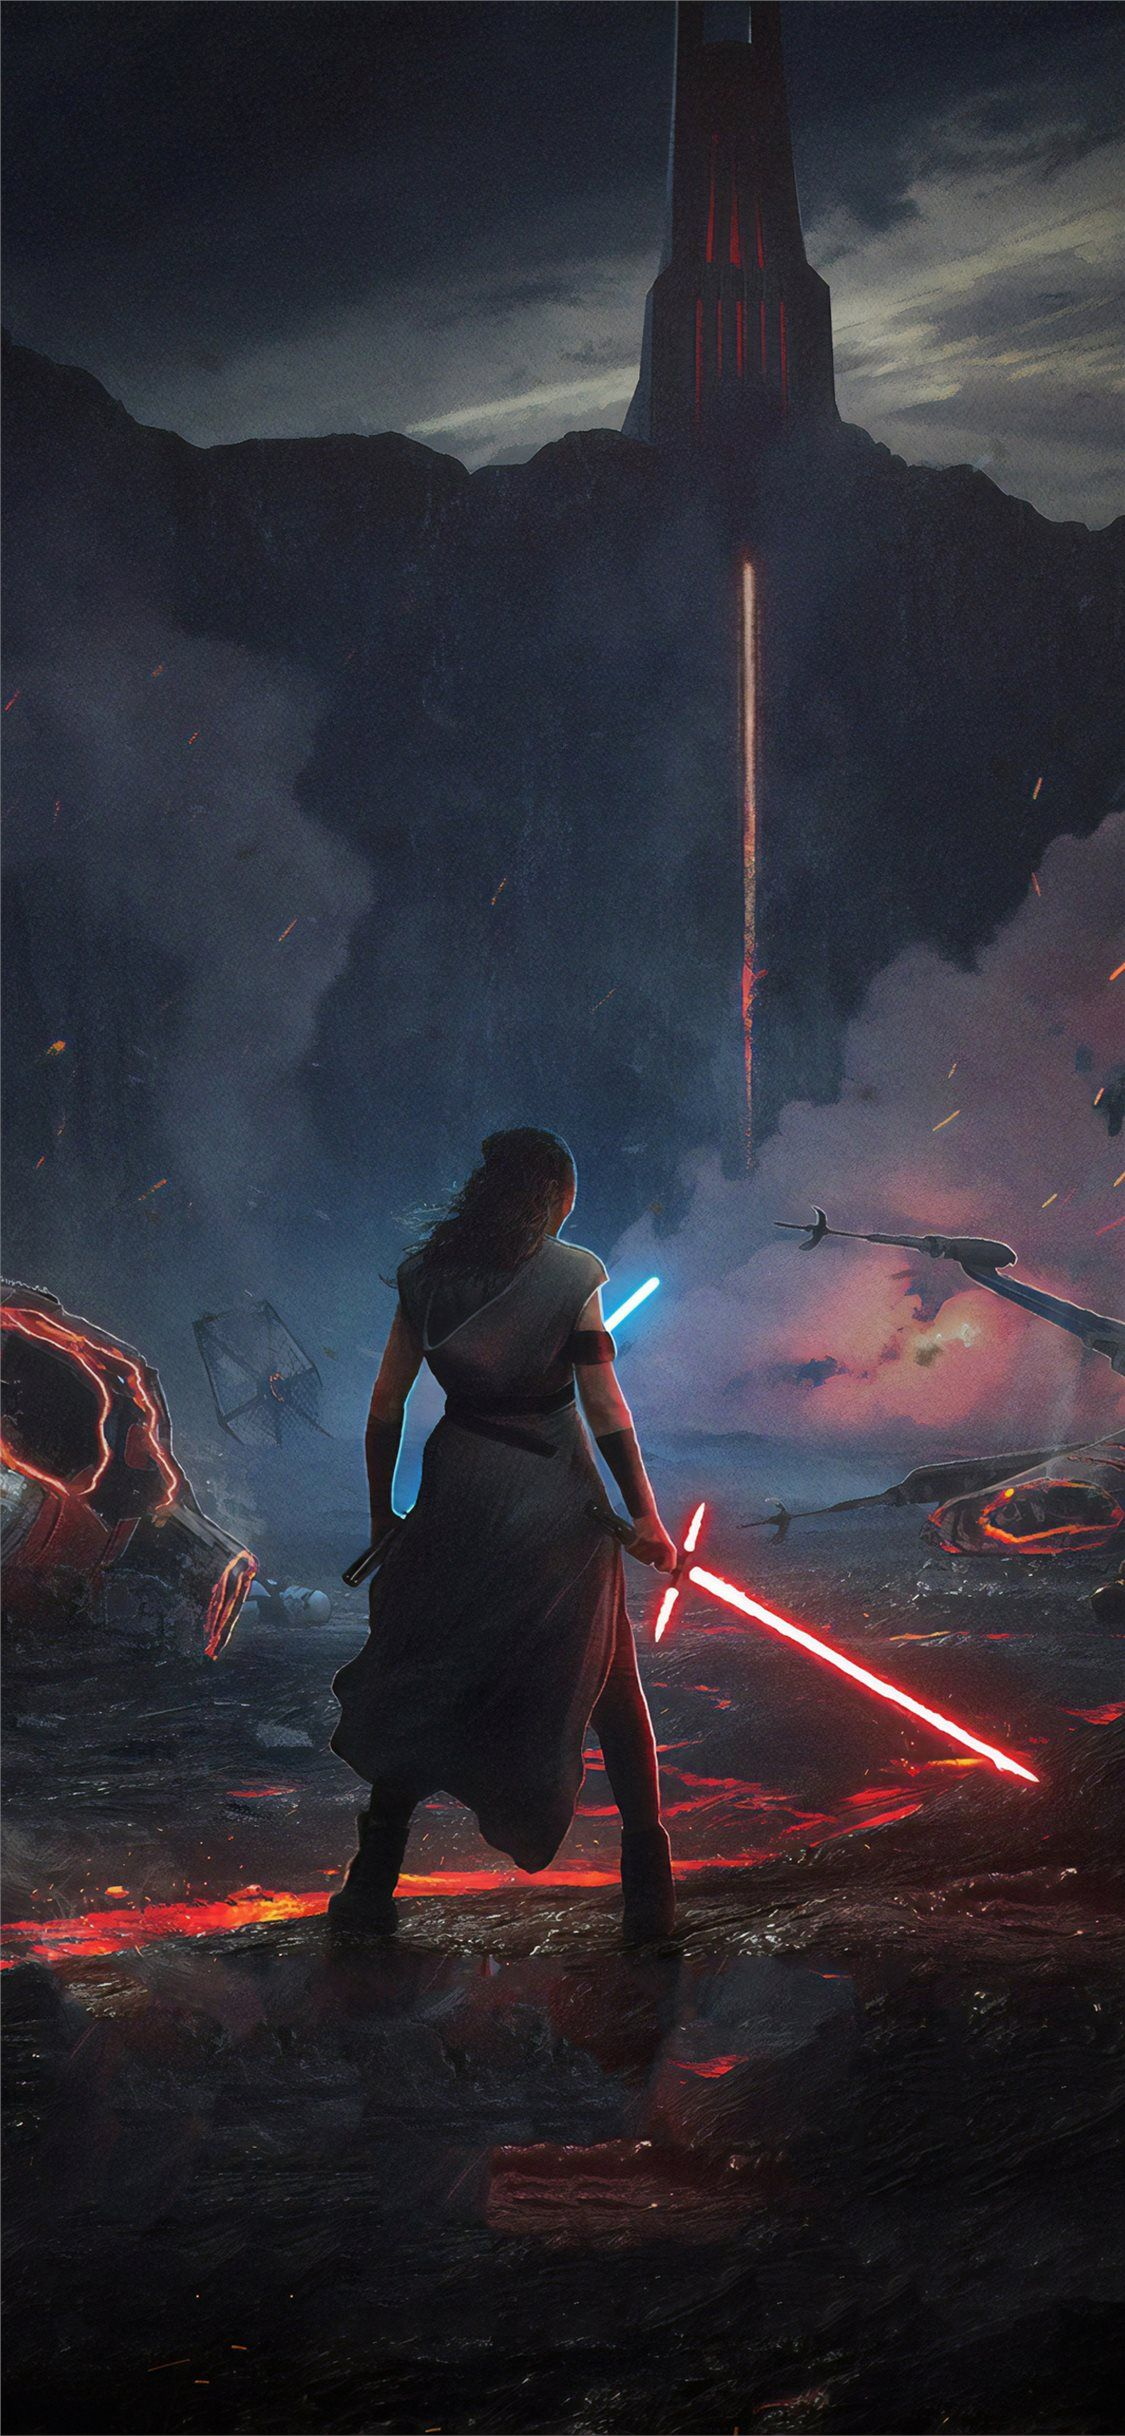 Star Wars The Rise Of Skywalker Wallpapers Top Free Star Wars The Rise Of Skywalker Backgrounds Wallpaperaccess